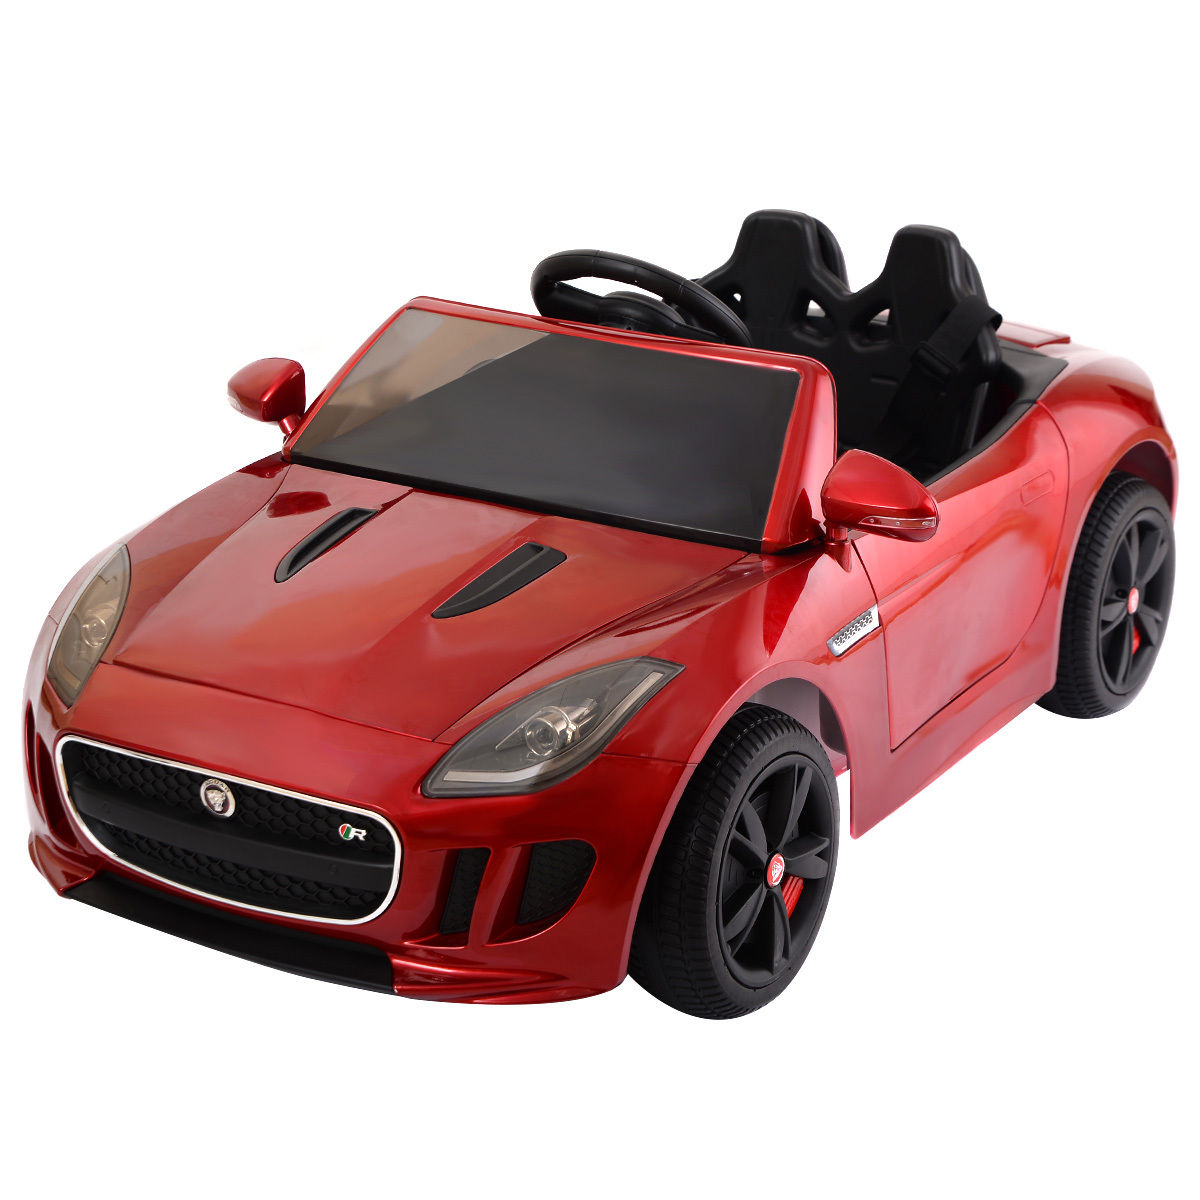 Jaguar F-TYPE 12V Battery Power Kids Ride On Car Licensed MP3 RC Remote Control by Costway